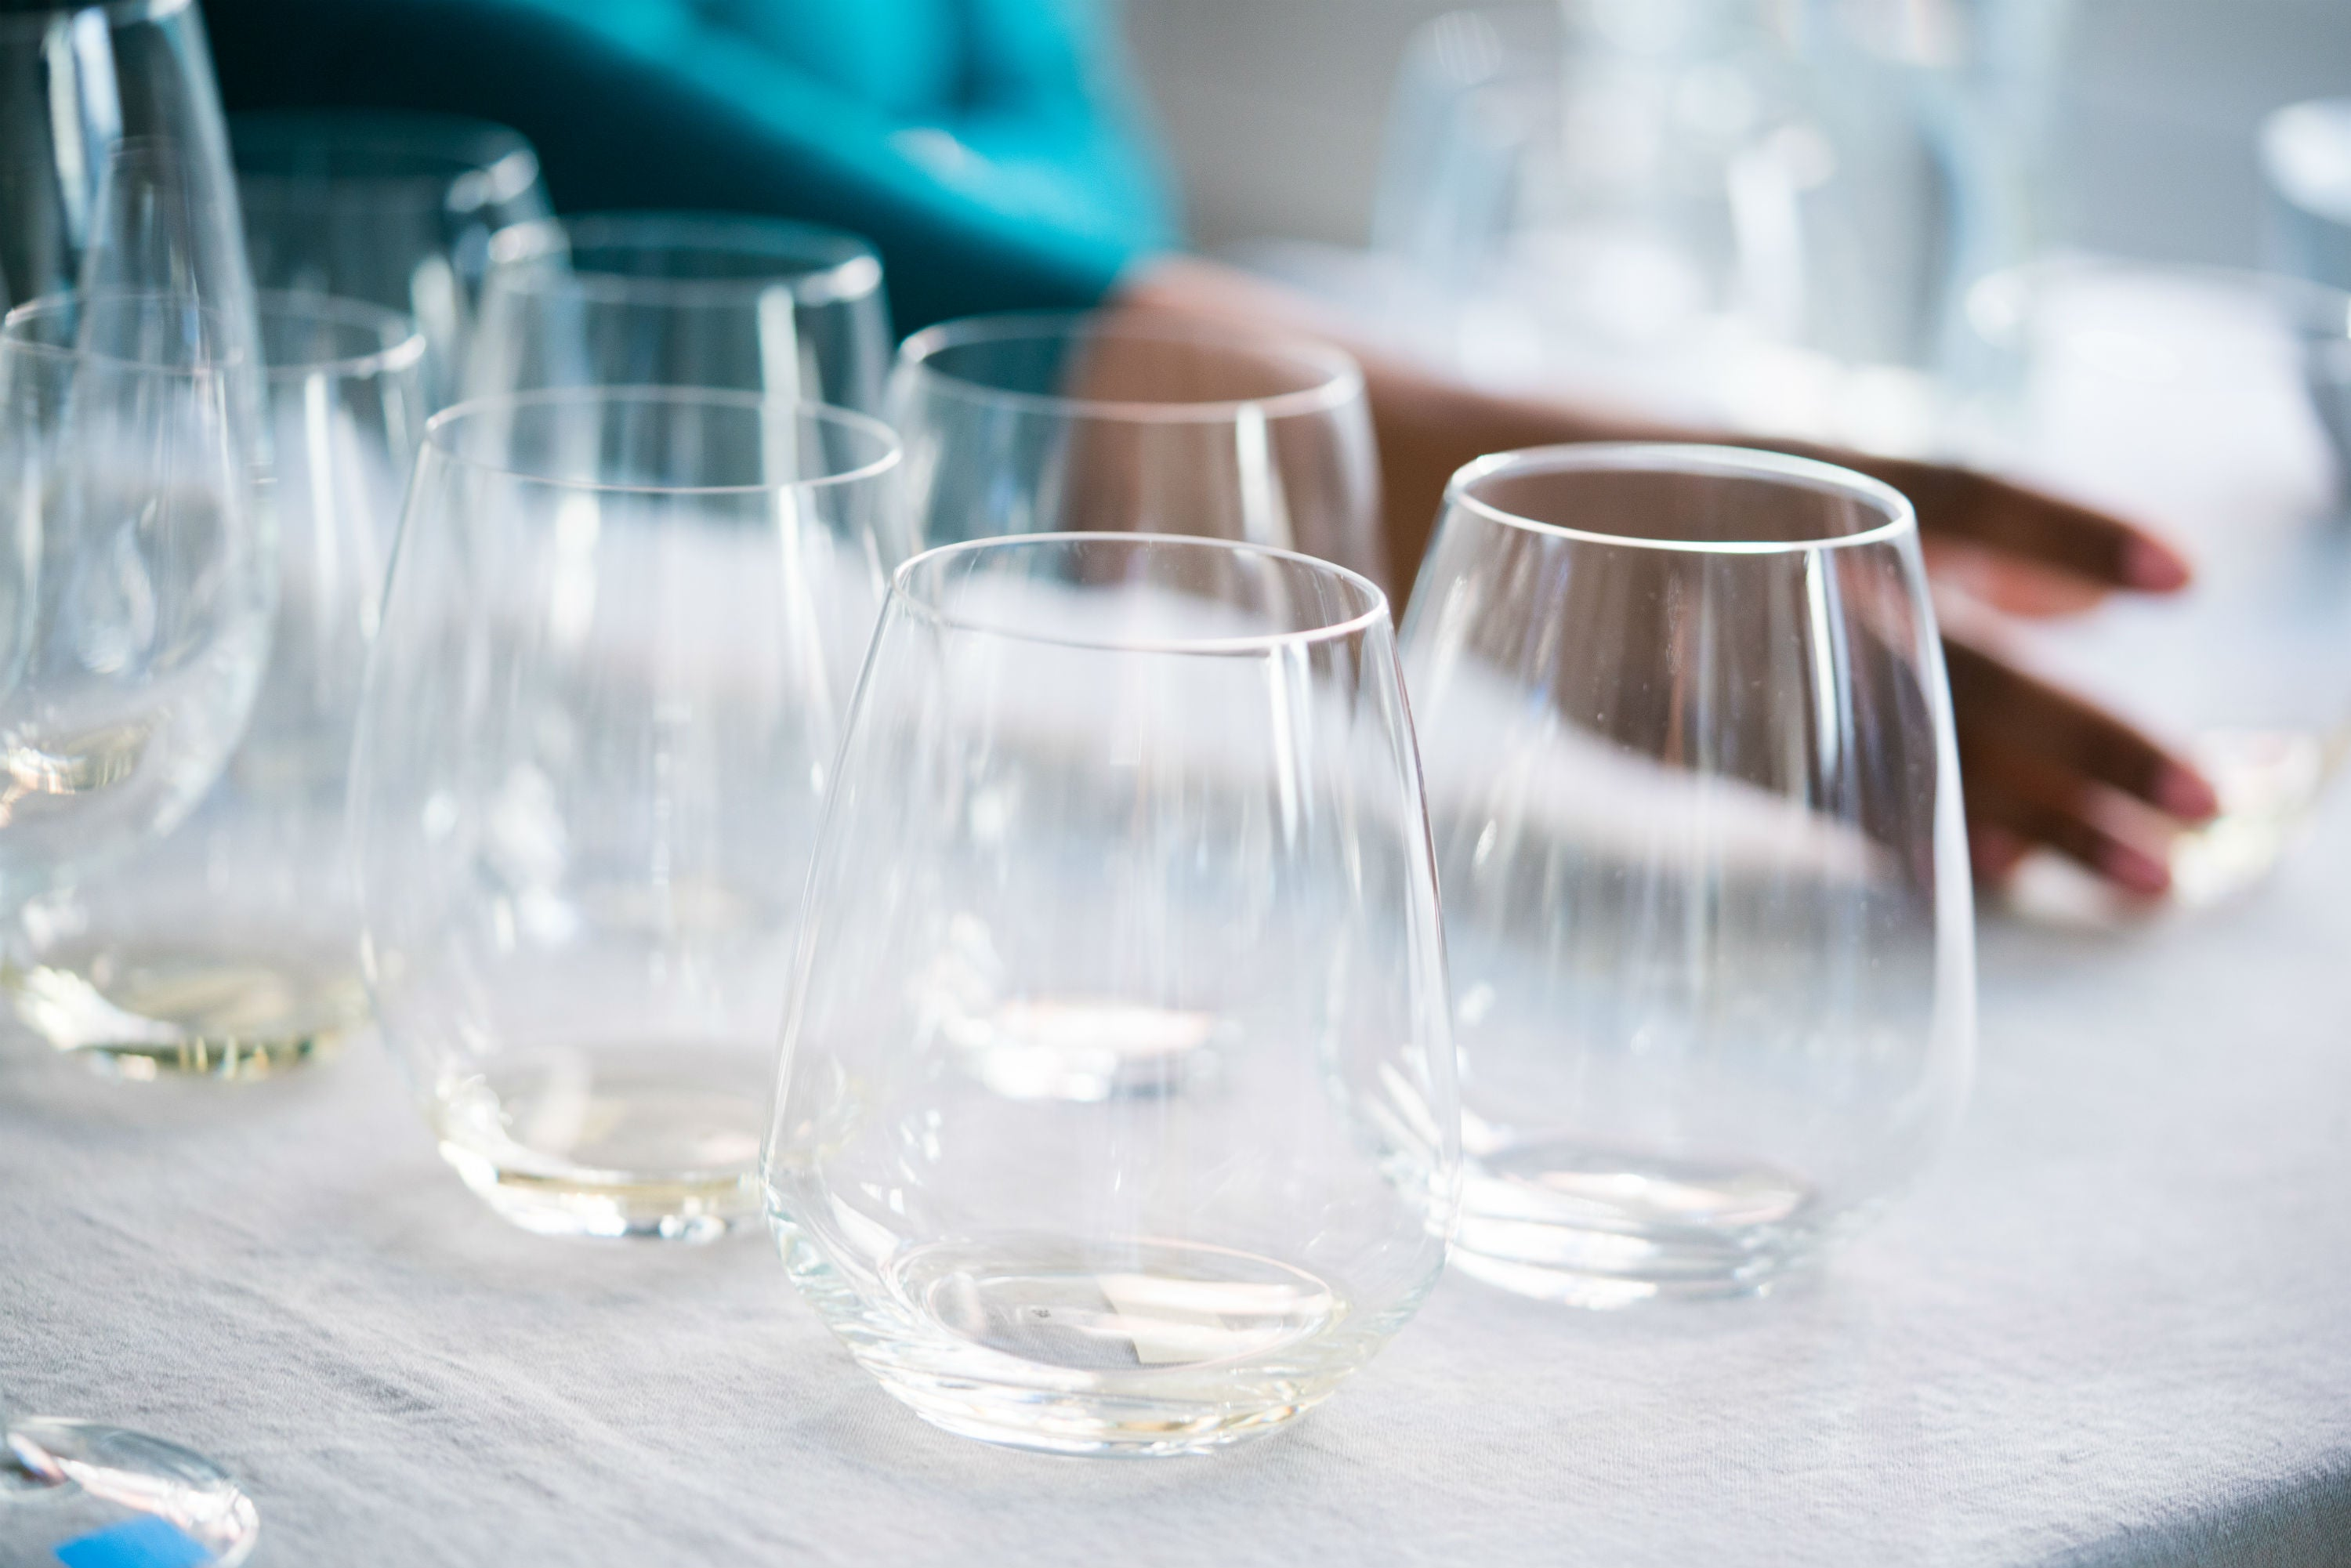 stemless wine glasses lined up